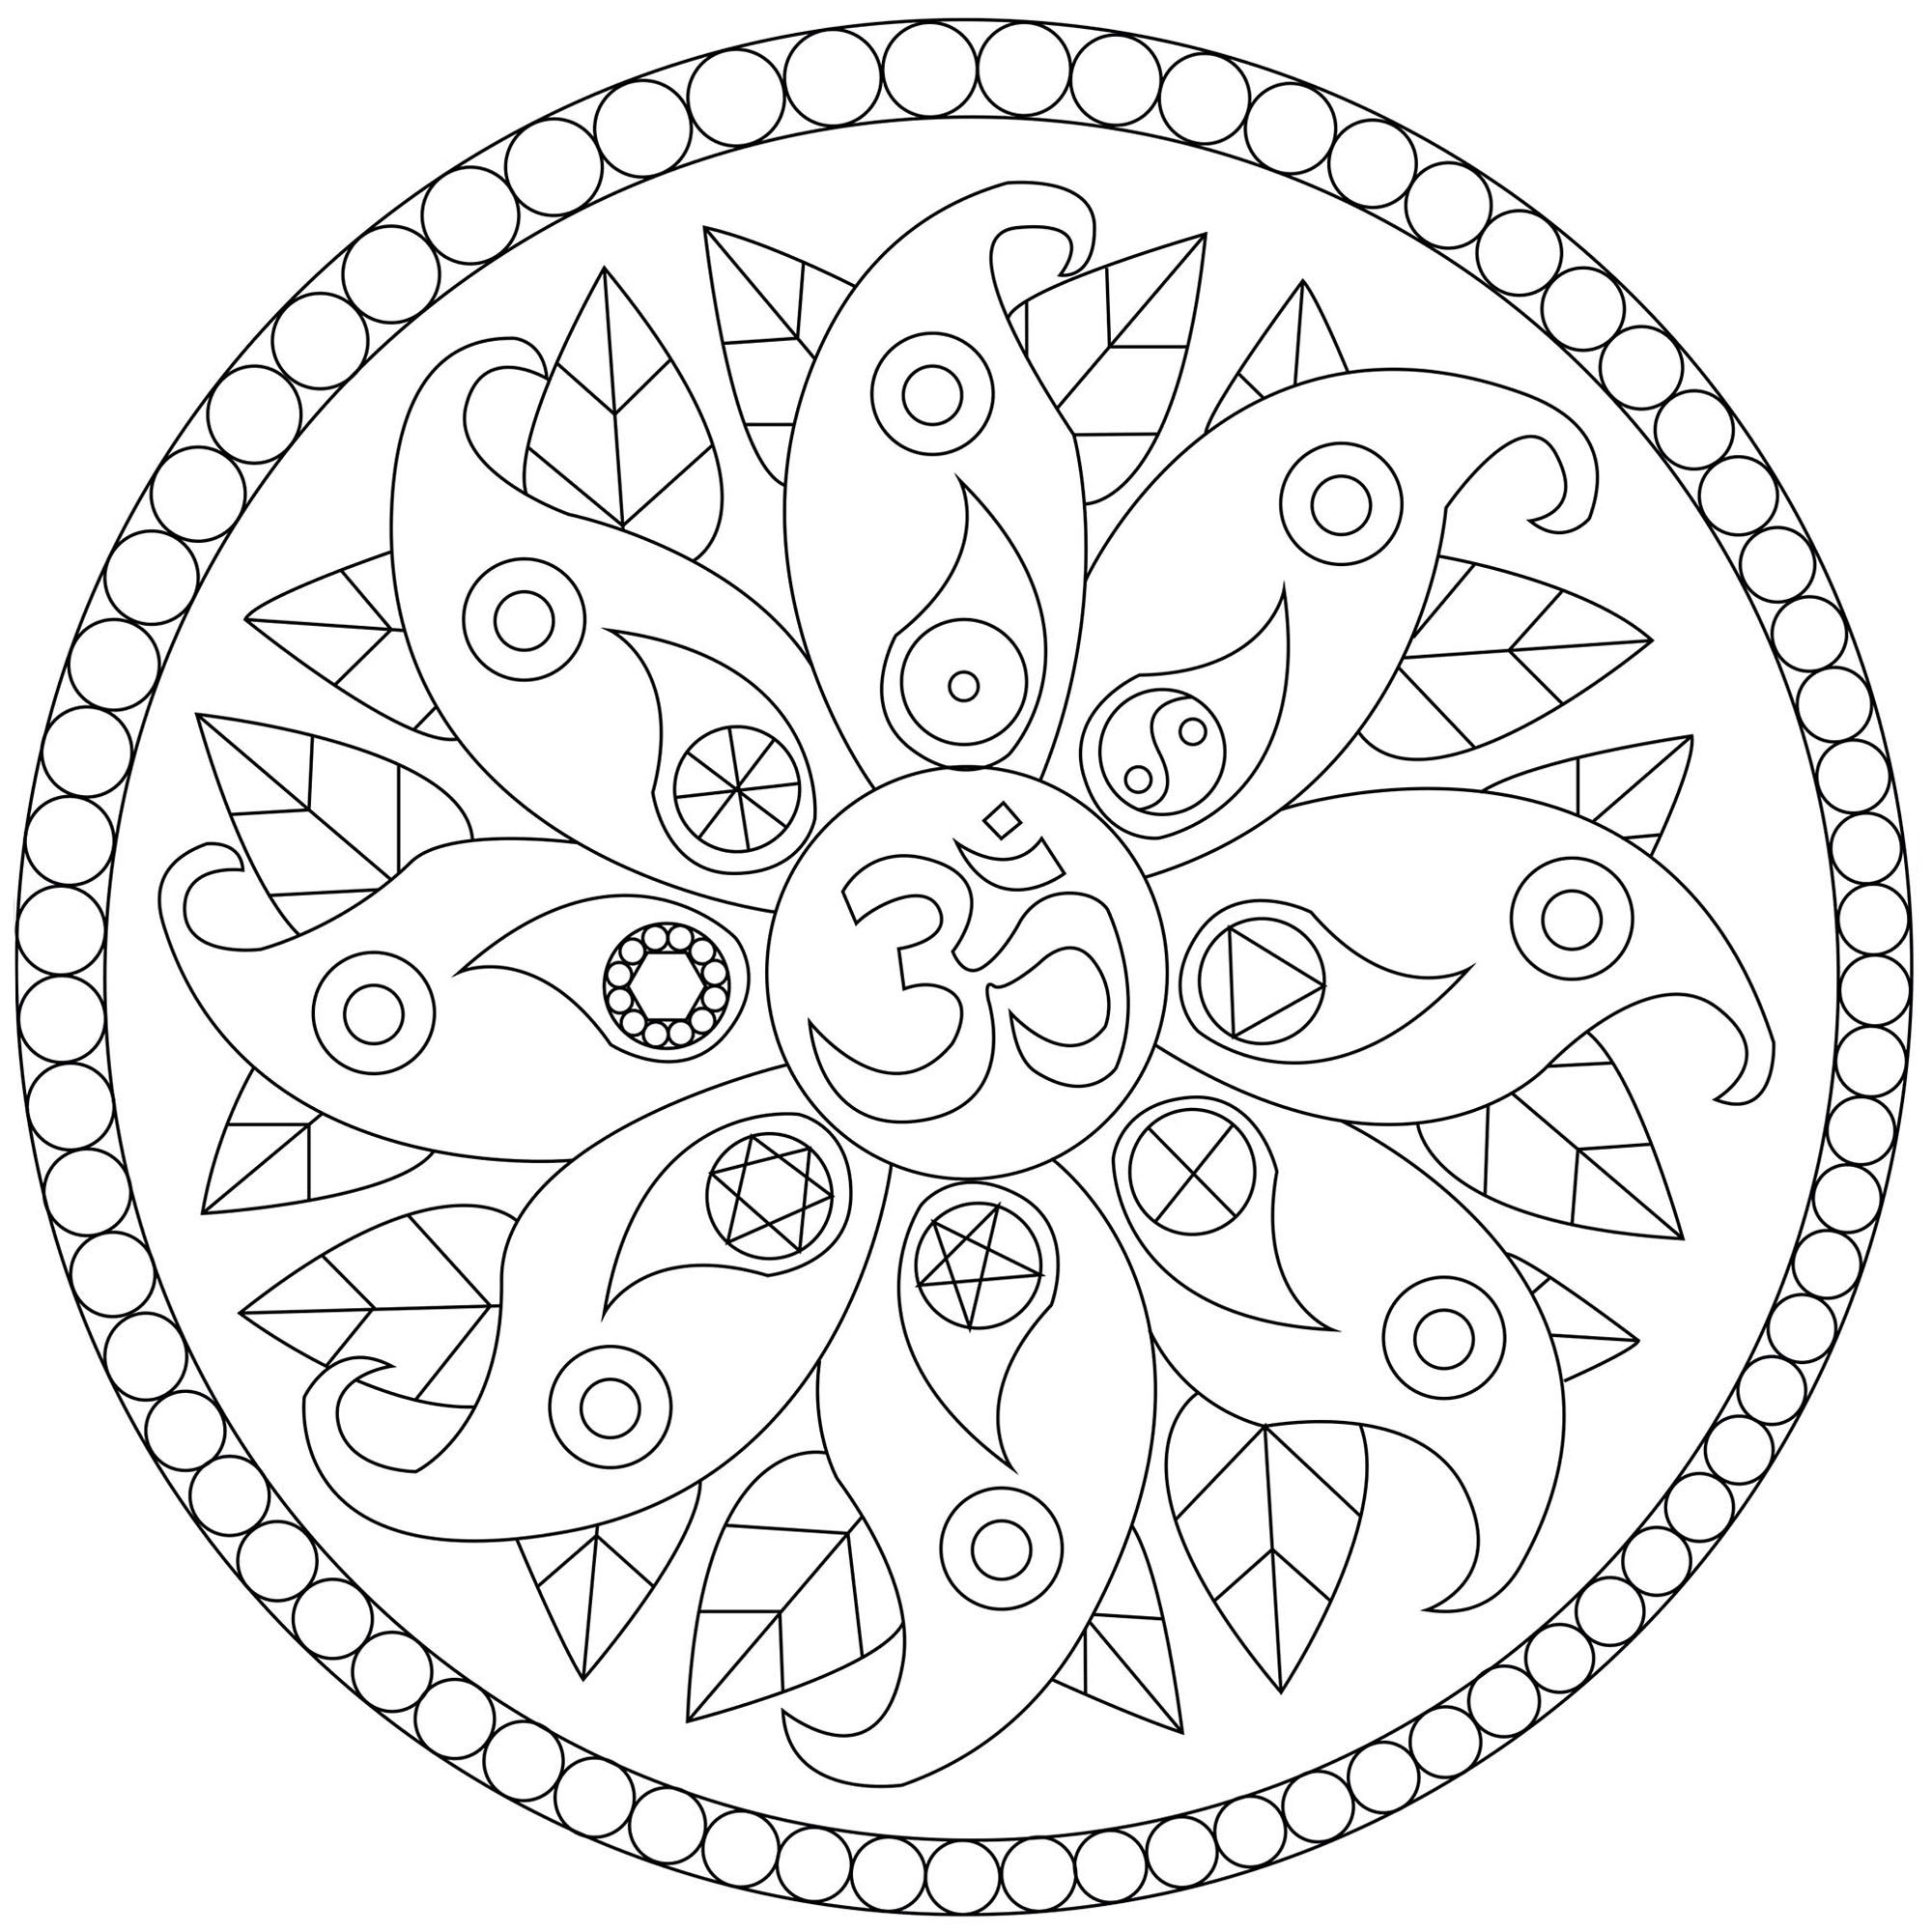 Mandala With Peace Symbols Mandalas Coloring Pages For Adults